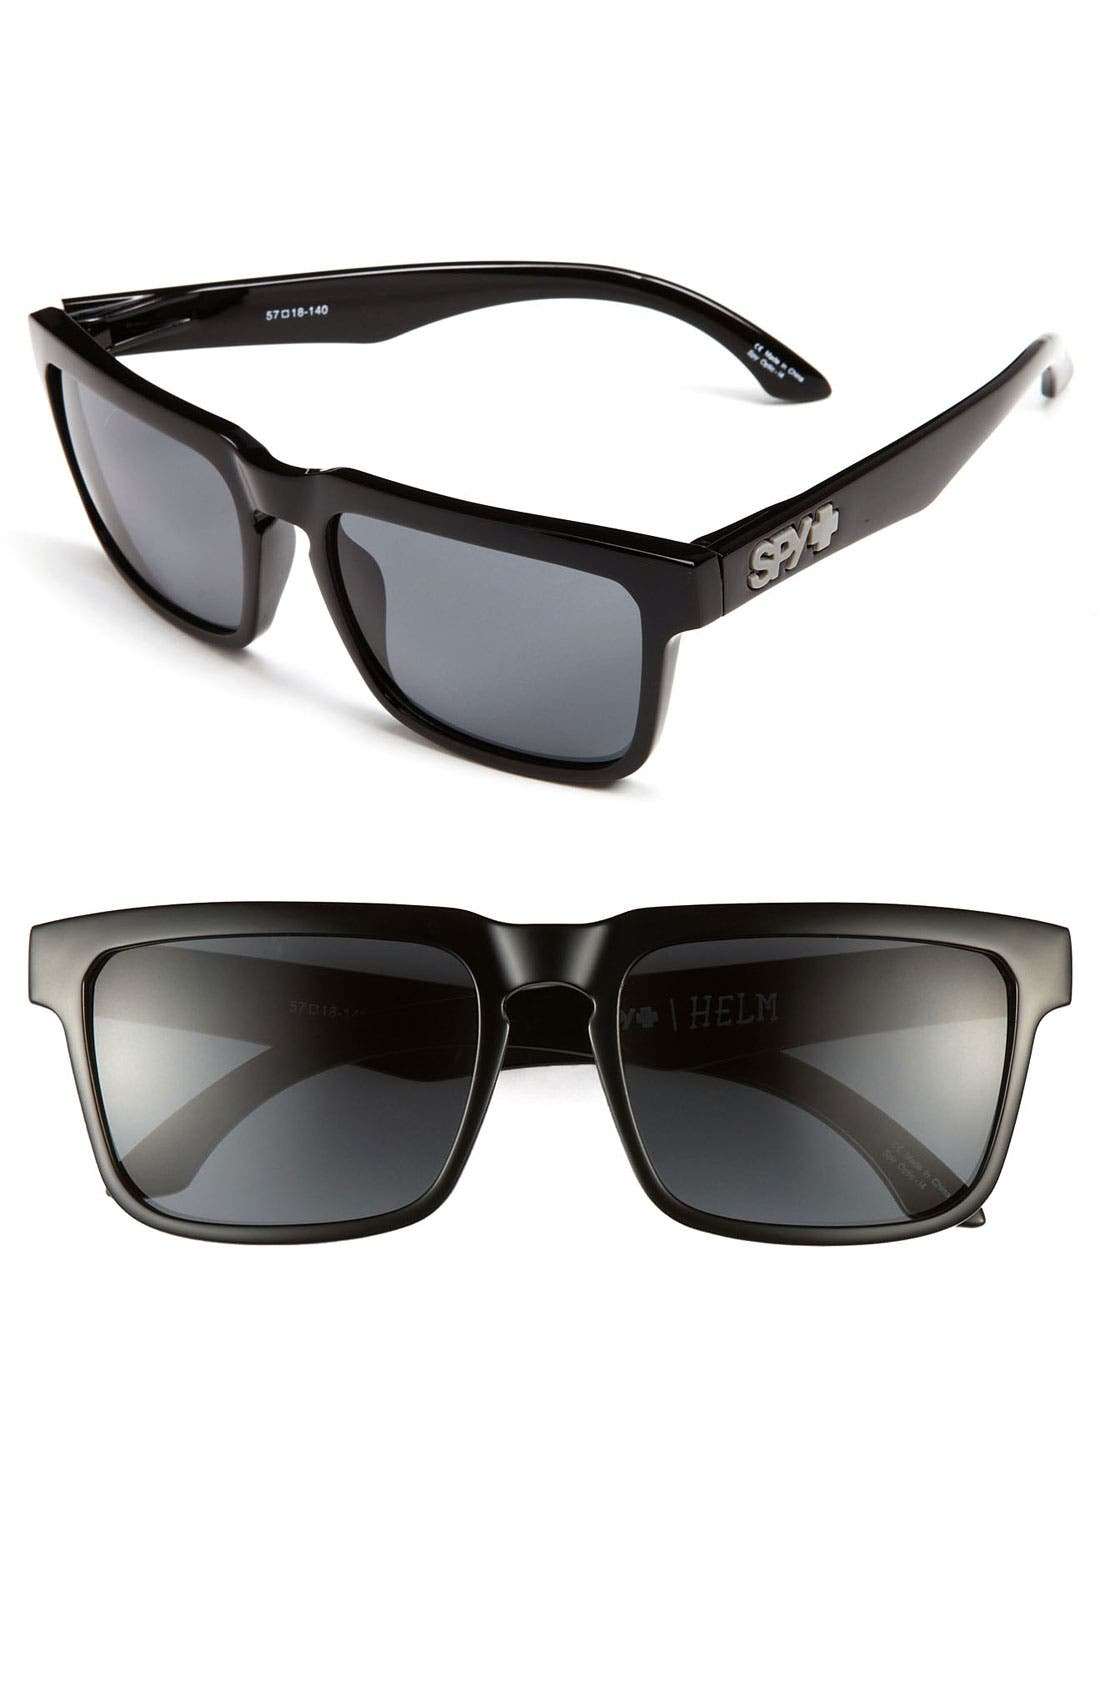 Main Image - SPY Optic 'Helm' 57mm Sunglasses